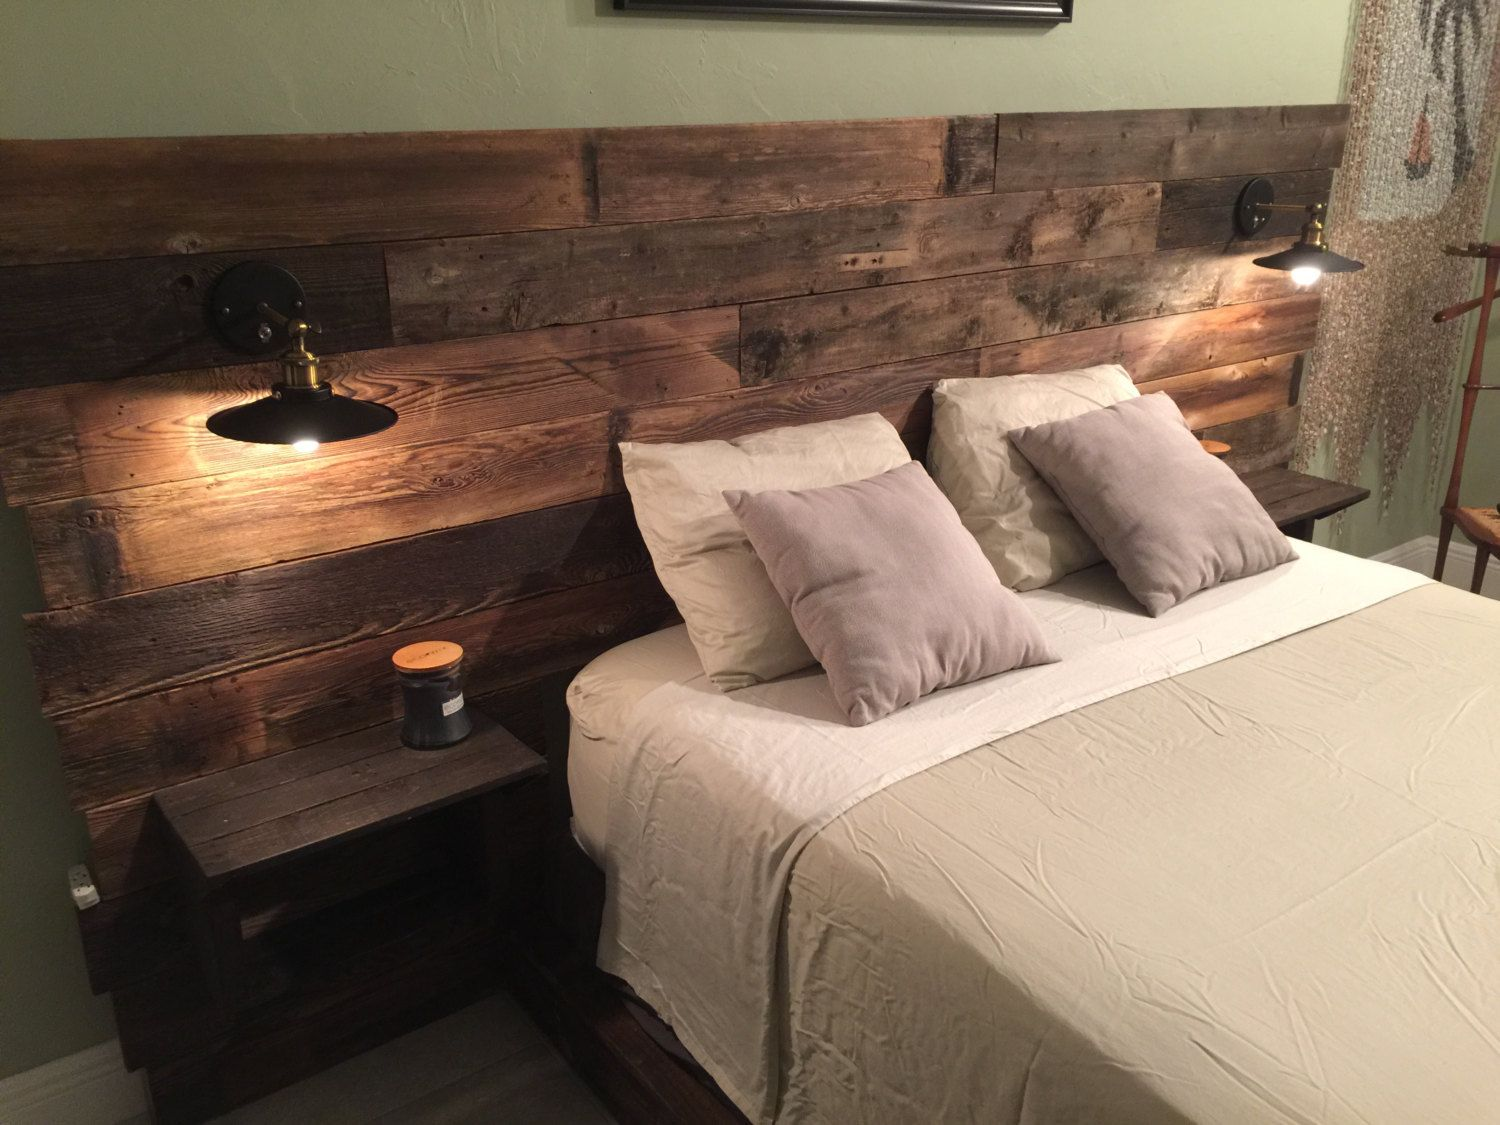 rustic headboard standard wood headboard queen headboard king headboard full headboard rustic furniture headboard industrial